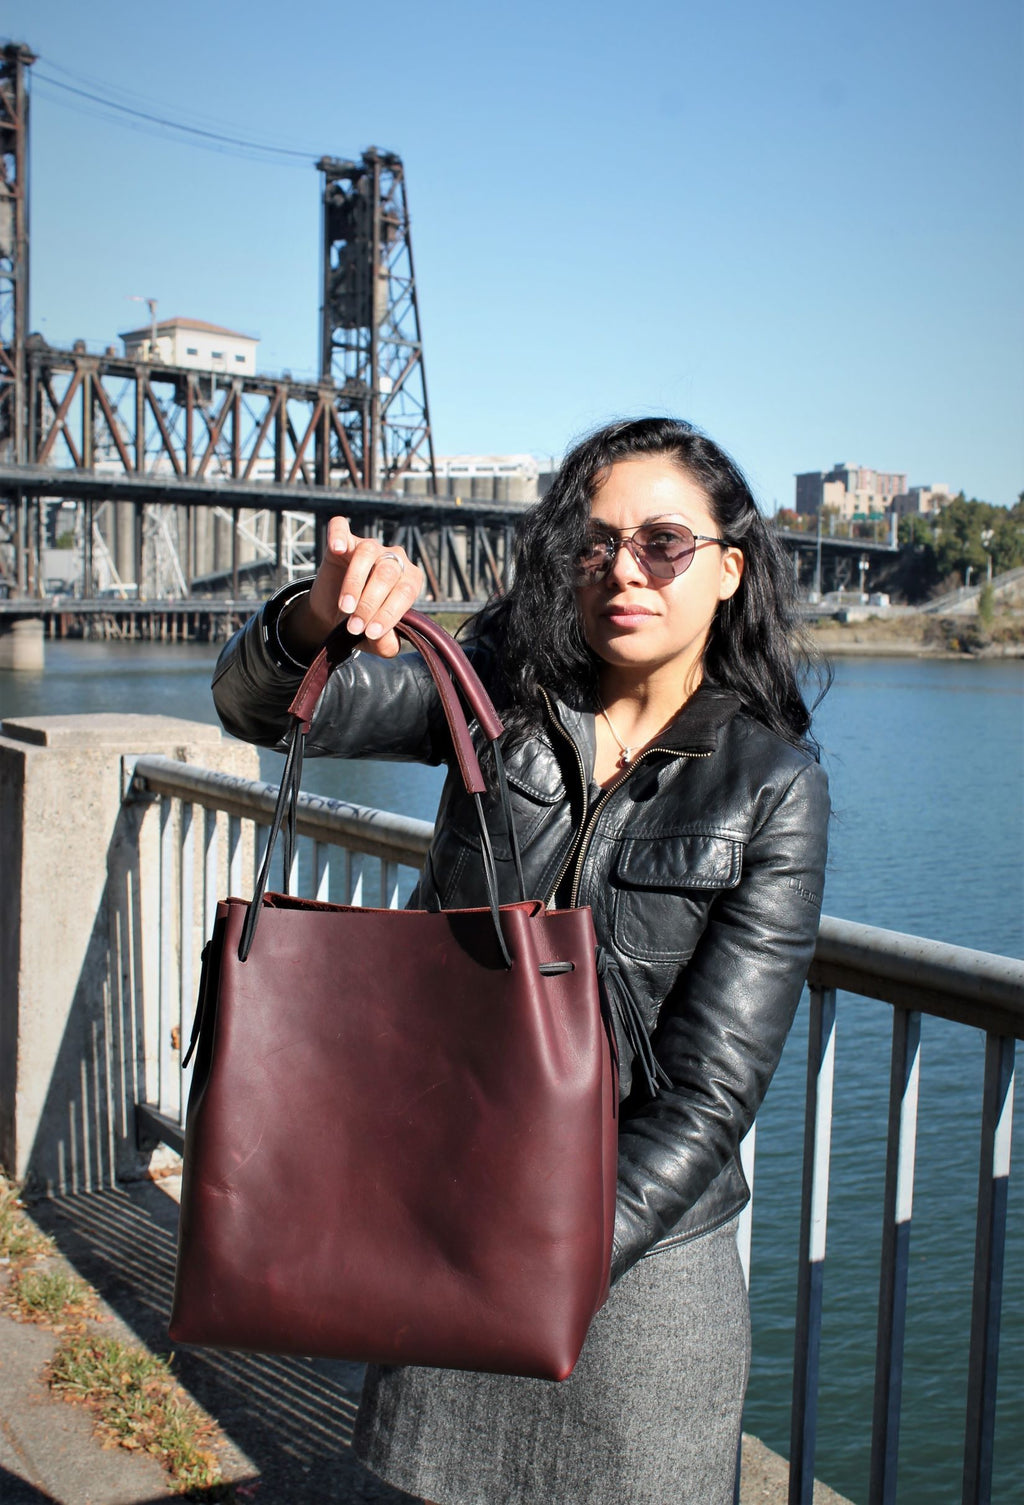 Burgundy Leather Tote Bag - available in Sable, Saddle Brown, Distressed Brown, Chocolate Brown or Burgundy